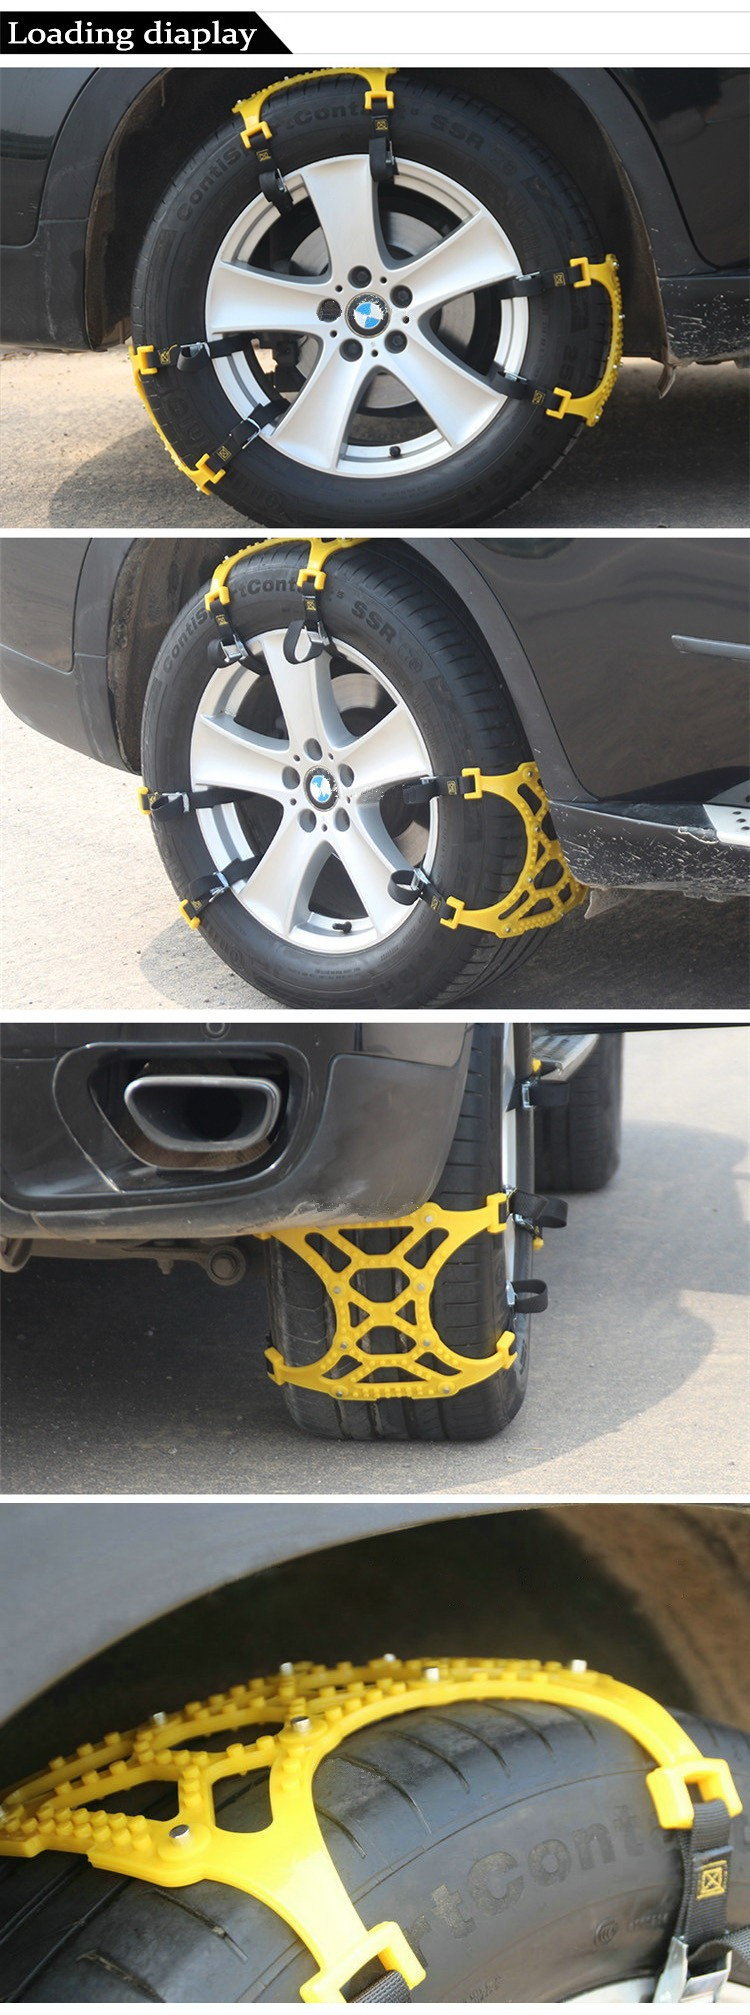 Car Tire Skid Chain For Universal Car Tire 165mm ~ 265mm